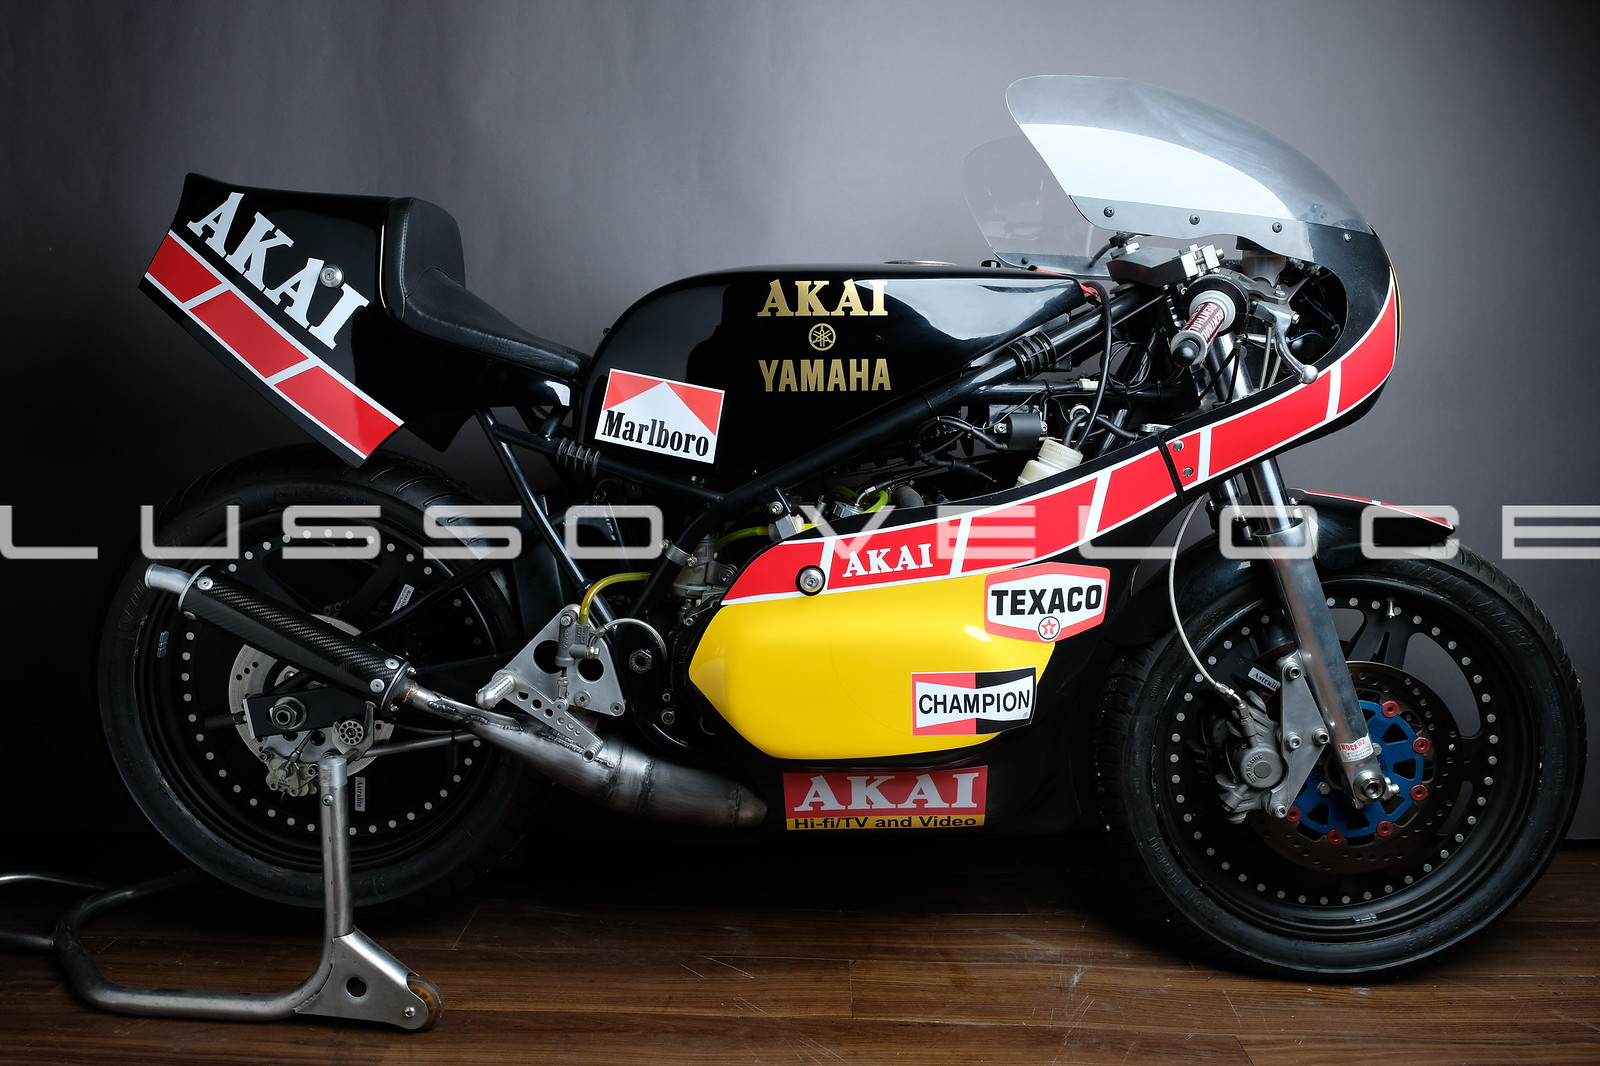 Yamaha TZ 350 Harris 3G3 Akai Sheene rep